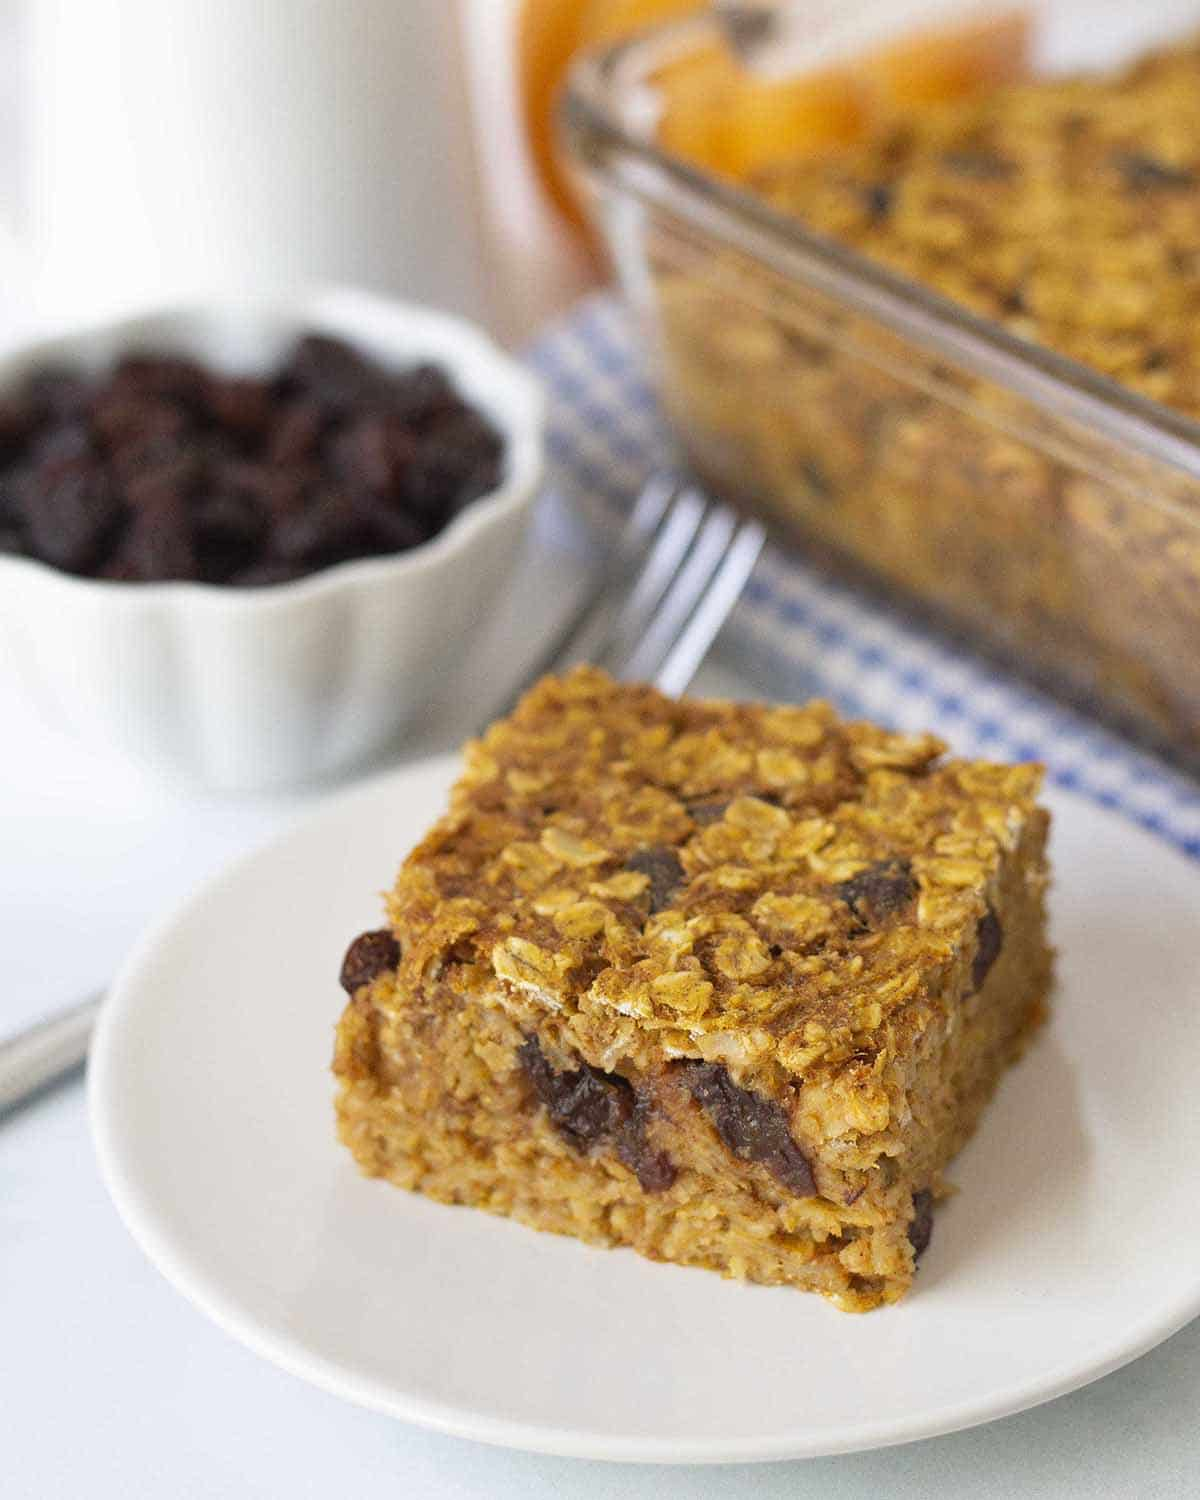 A close up shot of a slice of dairy-free baked oatmeal on a plate, a fork and a small bowl of raisins sits behind the plate.